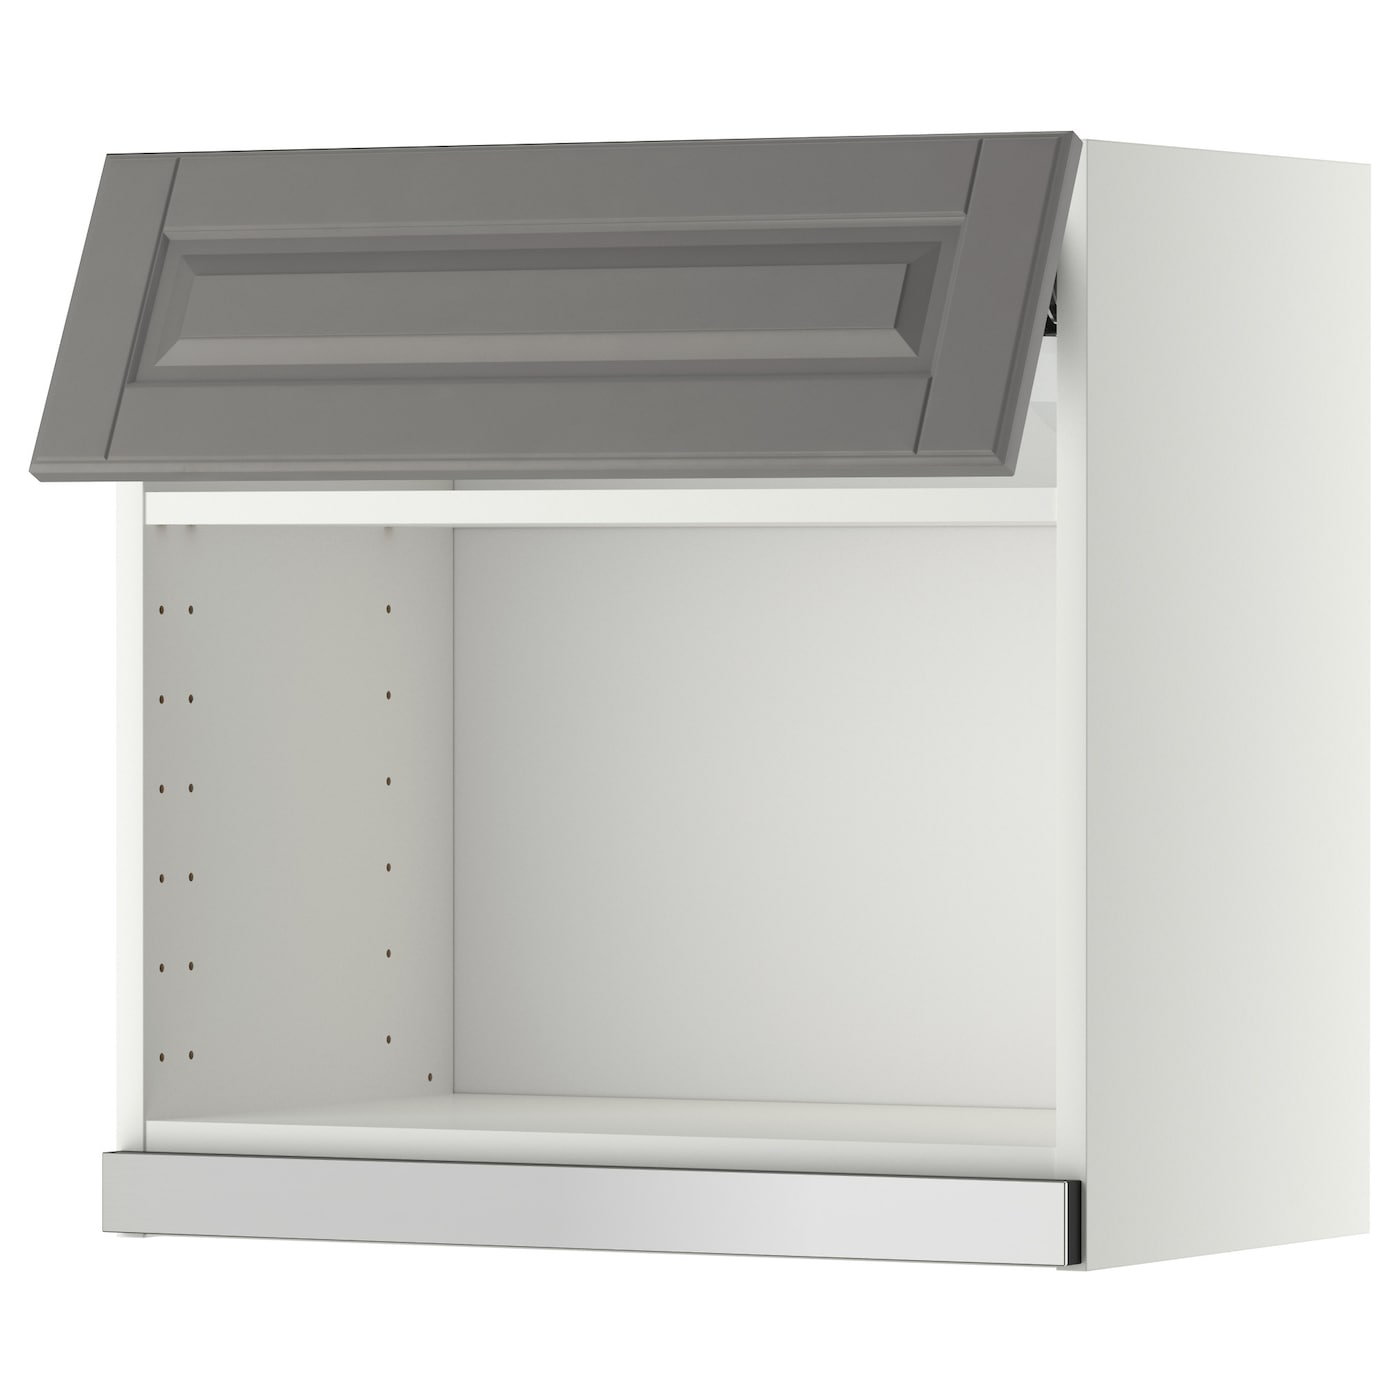 Microwave Shelf Ikea Uk Bestmicrowave